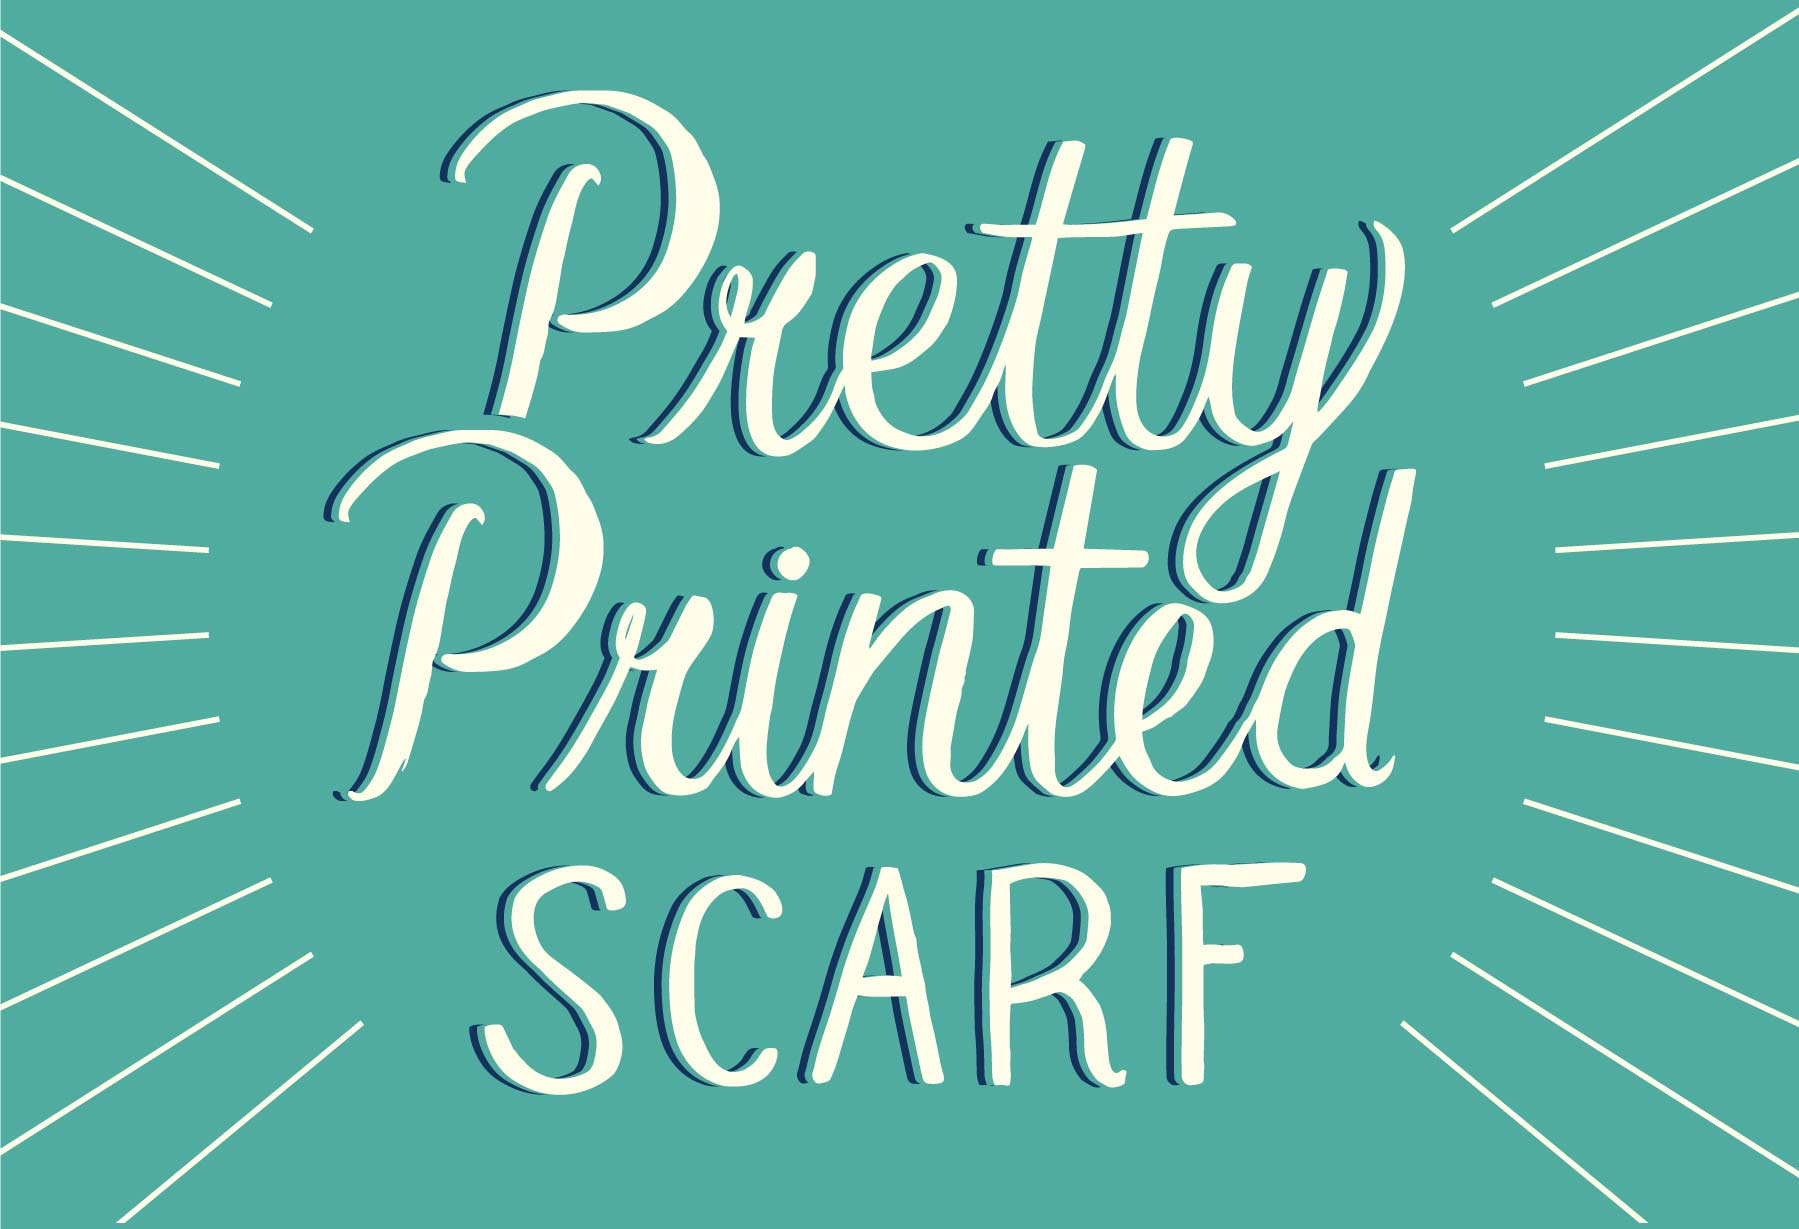 Custom Hand Lettering for Seasalt's Pretty Printed Scarf, by Elly Jahnz